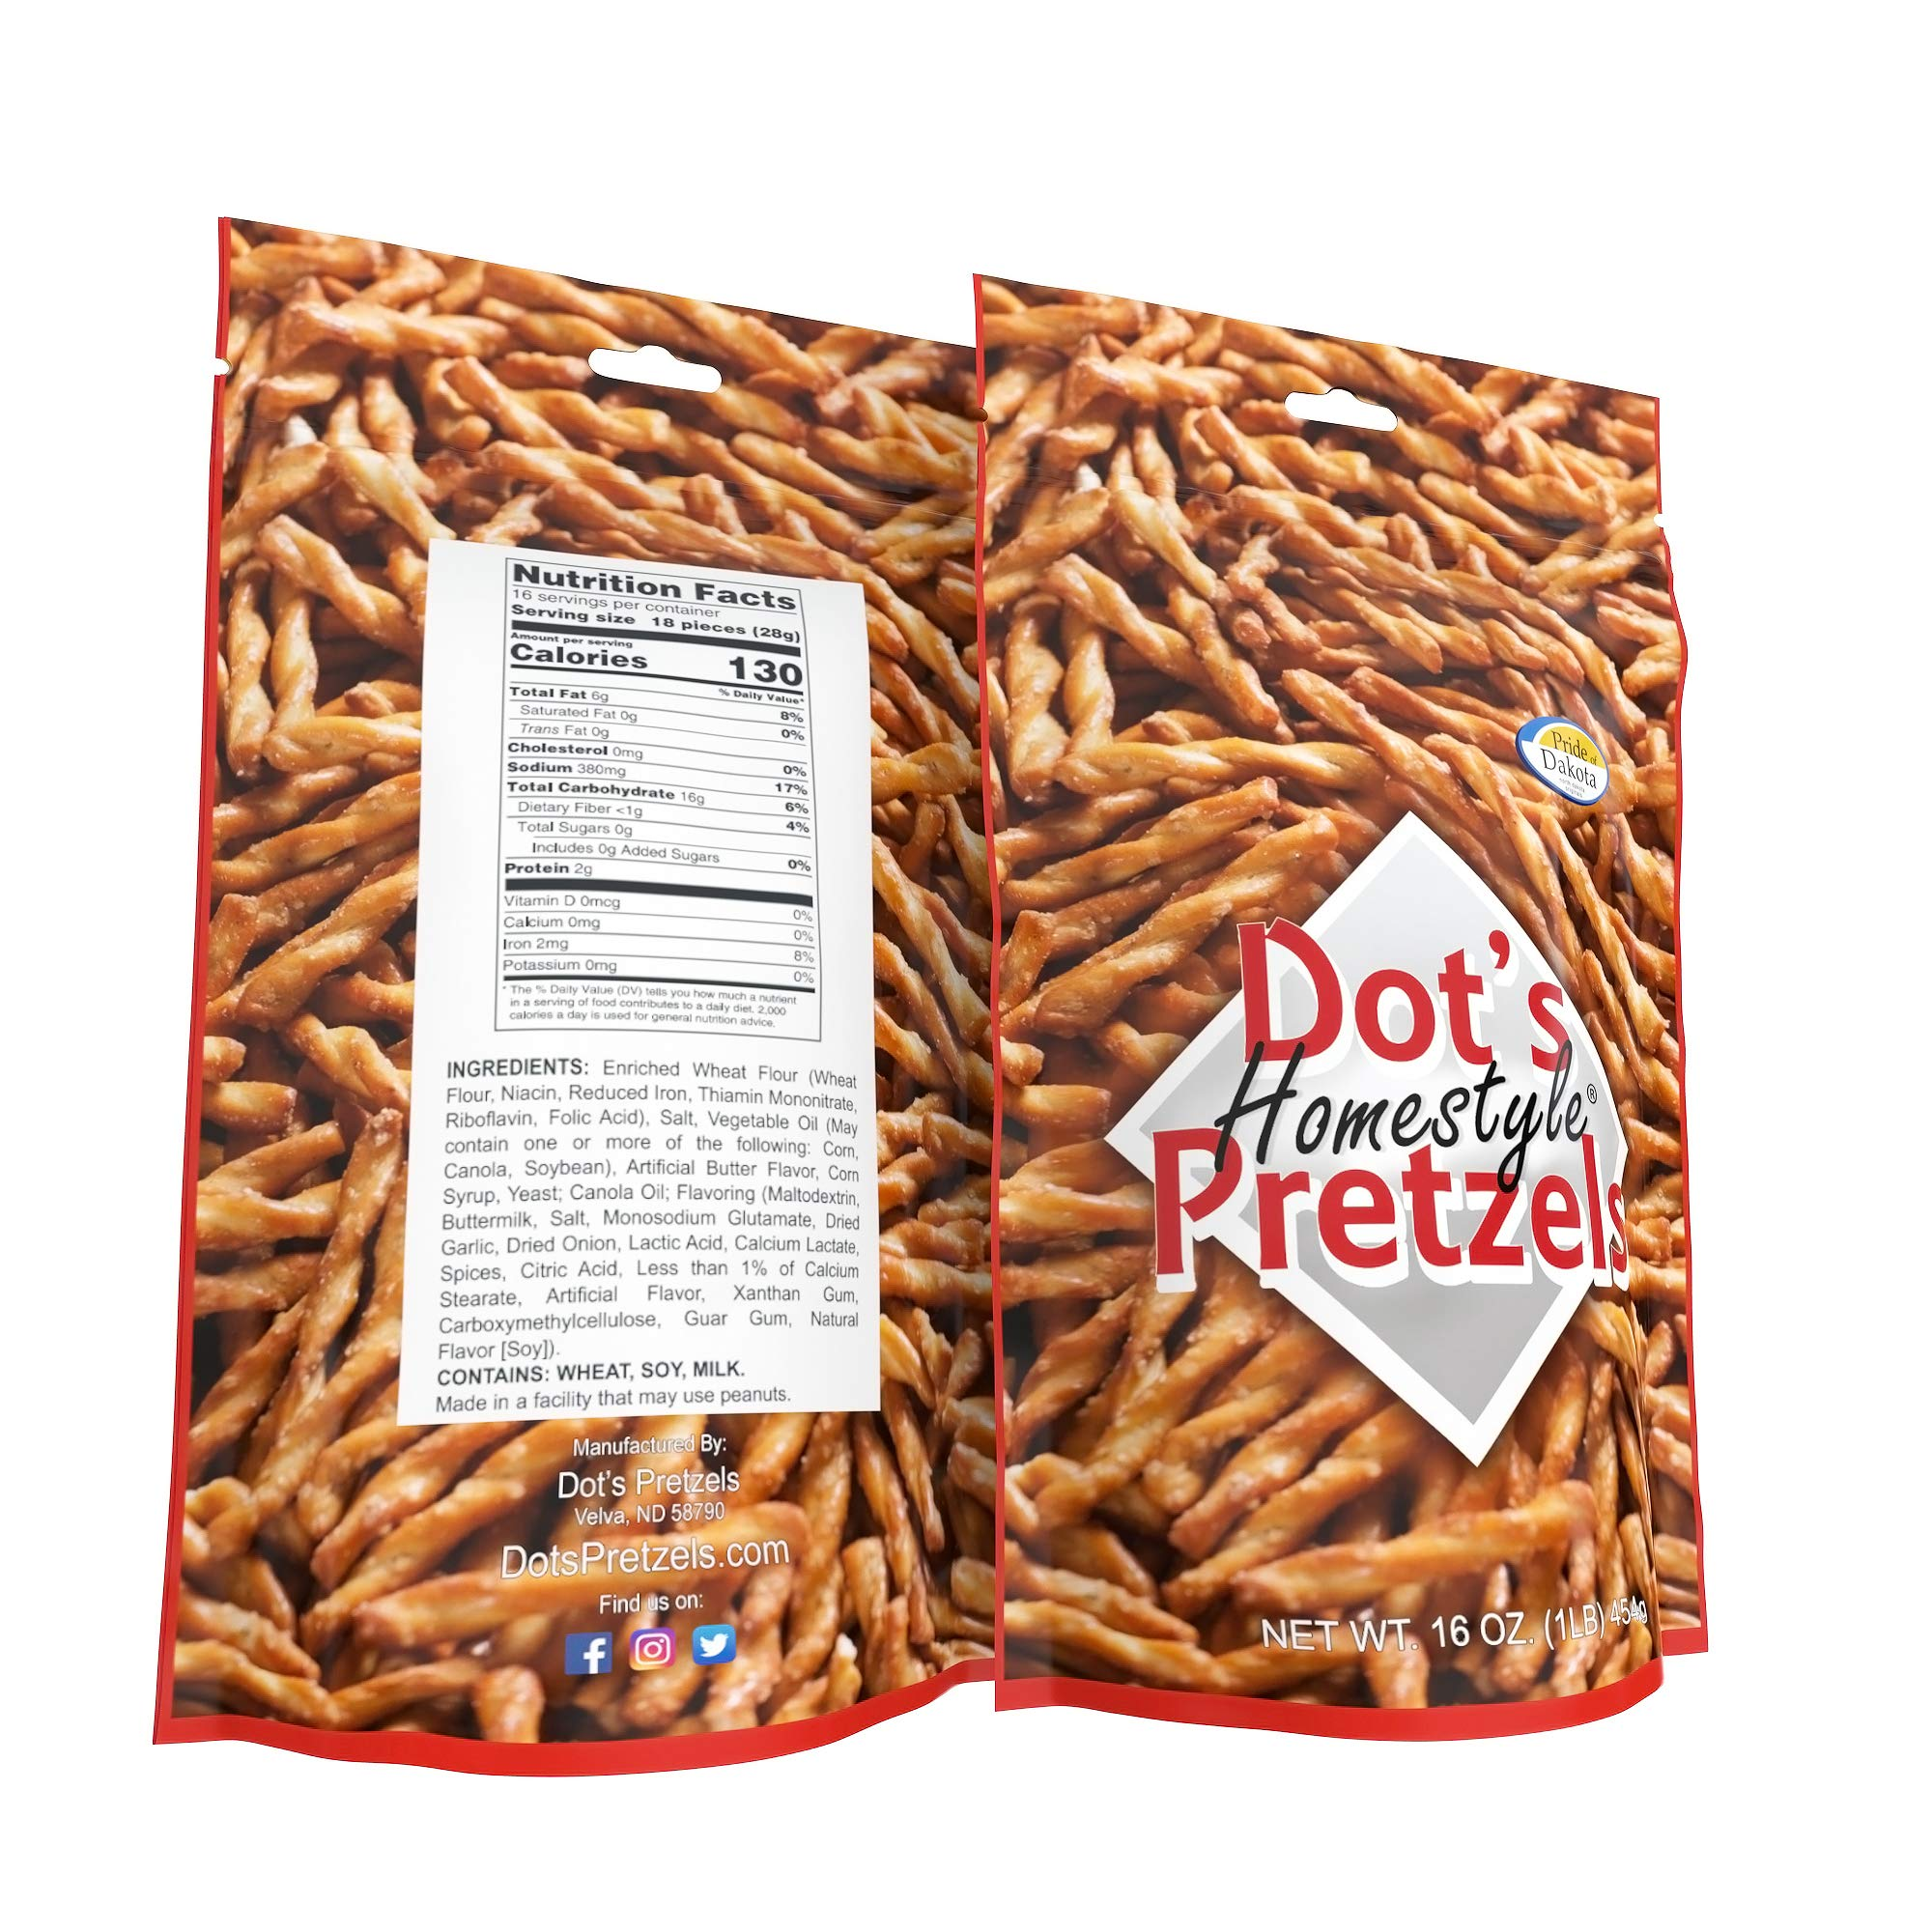 Dot's Homestyle Pretzels 1 lb. Bag (5 Bags) 16 oz. Seasoned Pretzel Snack Sticks (Packaging May Vary) by Dot's Homestyle Pretzels (Image #7)